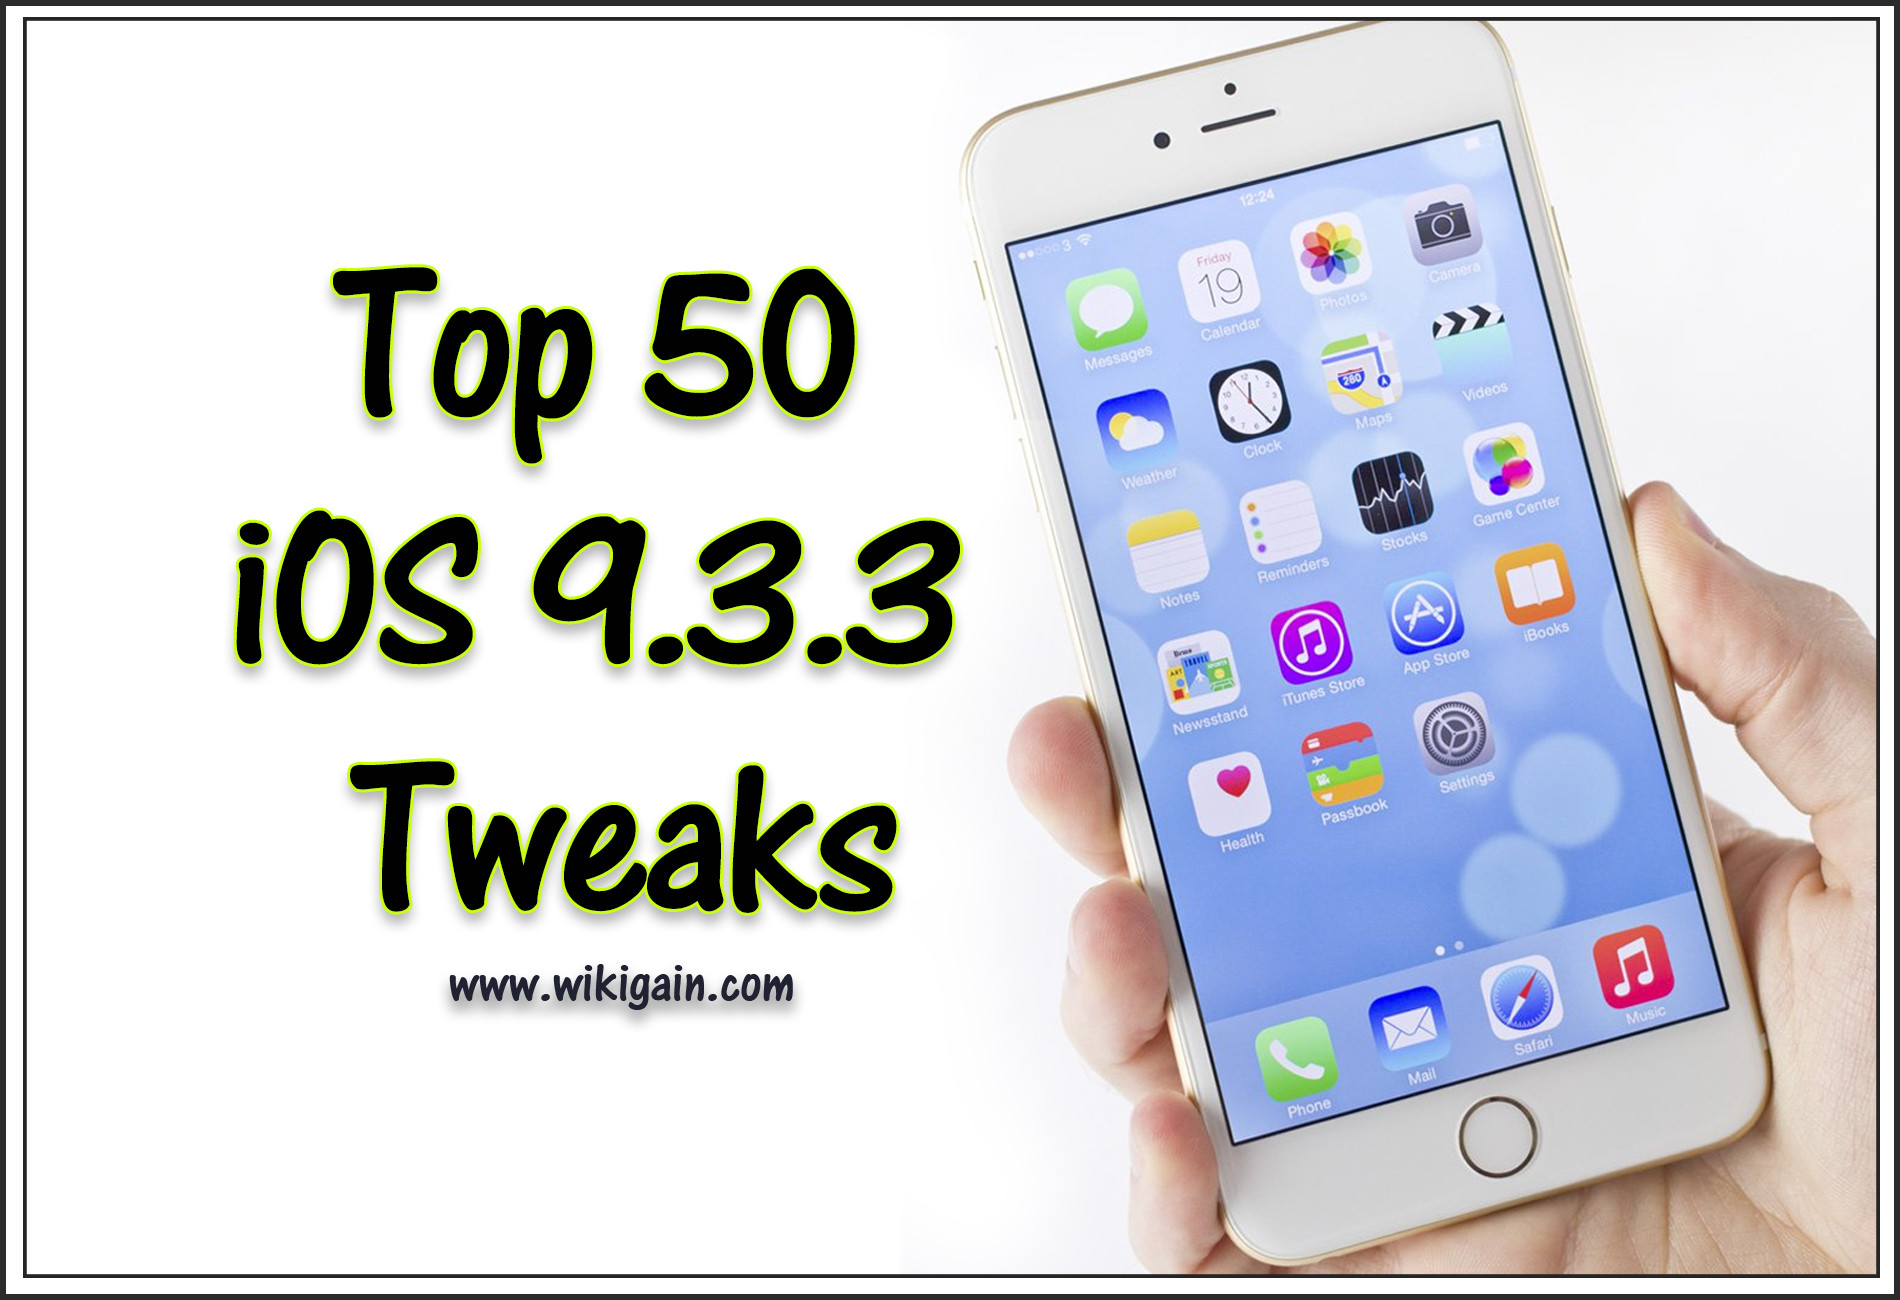 Top 50 iOS 9.3.3 Tweaks